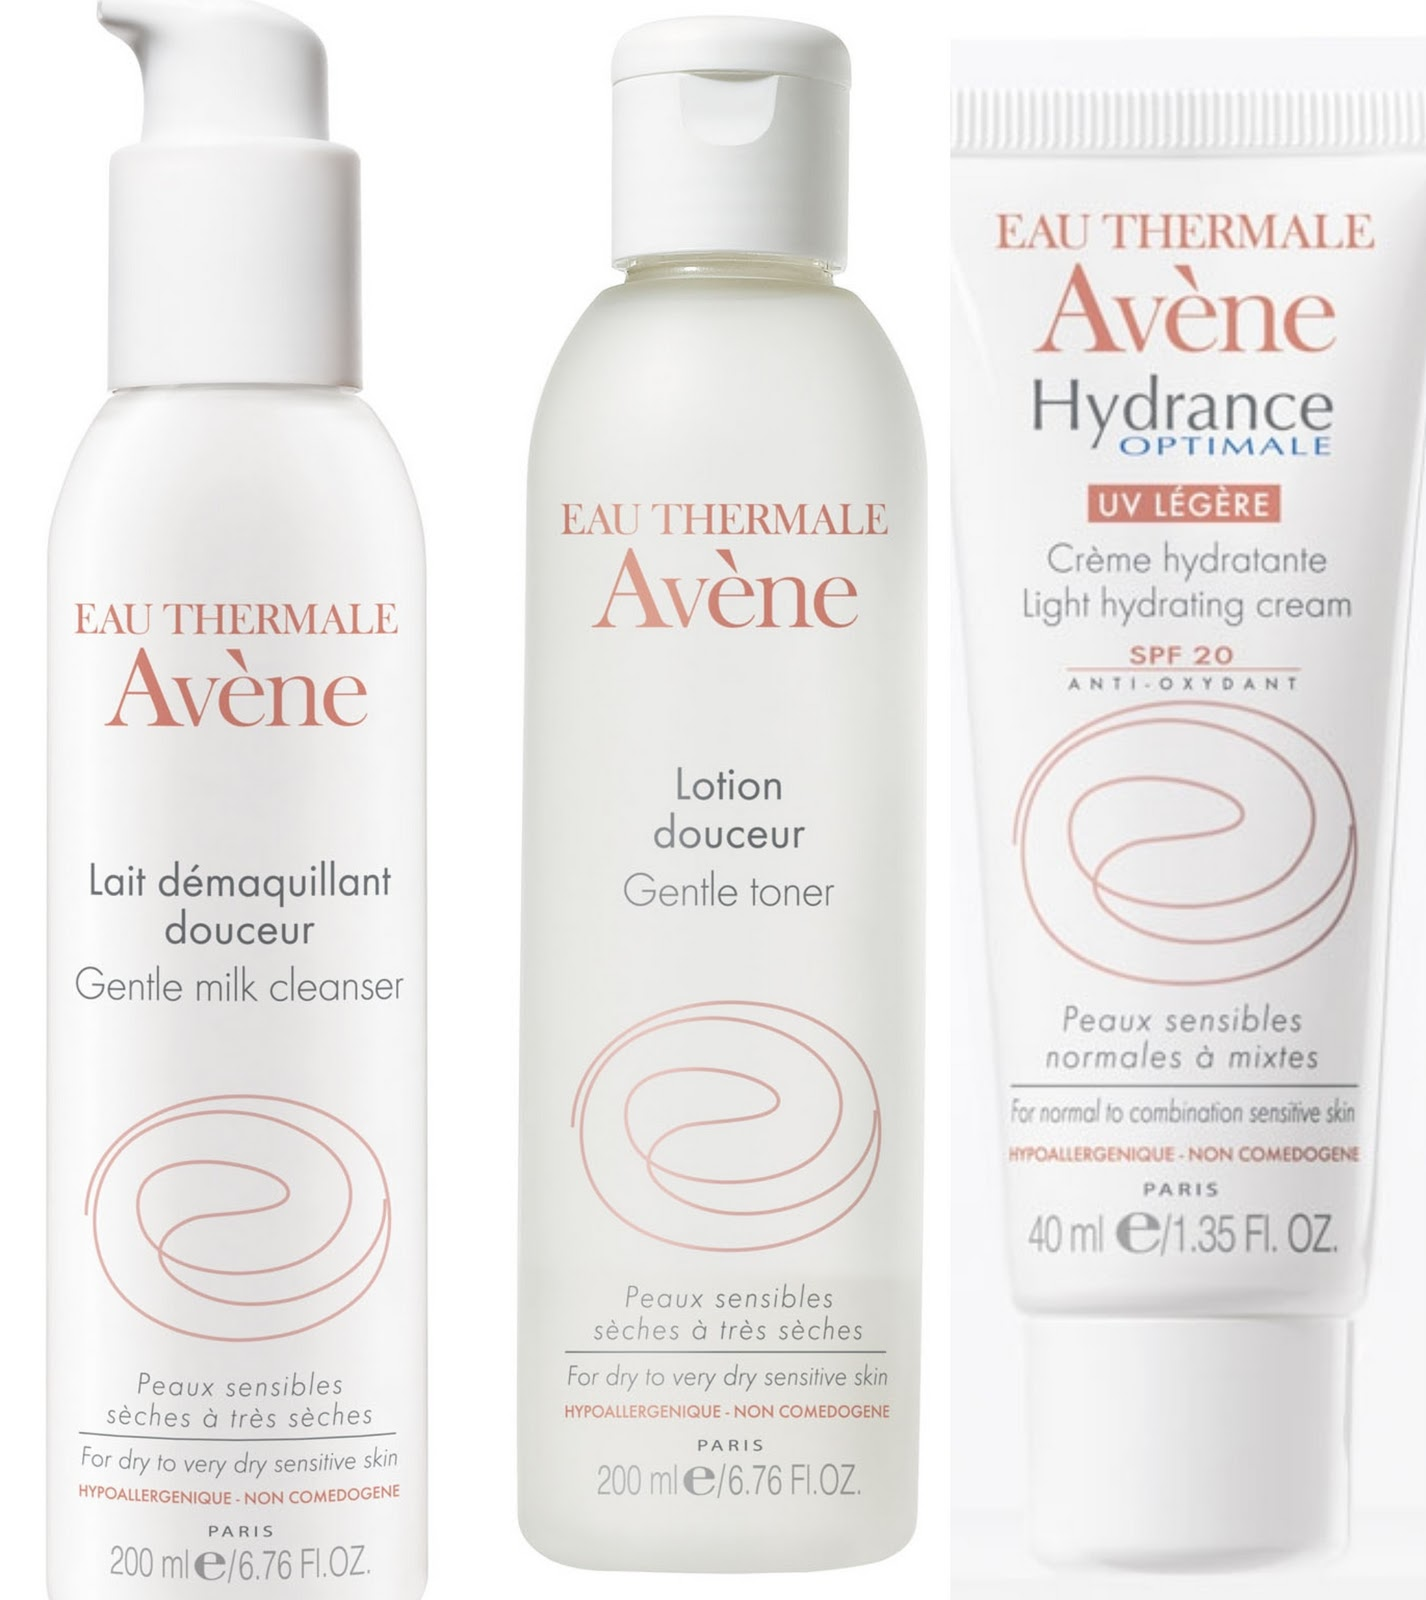 Beauty Passionista Avene Skincare Giveaway